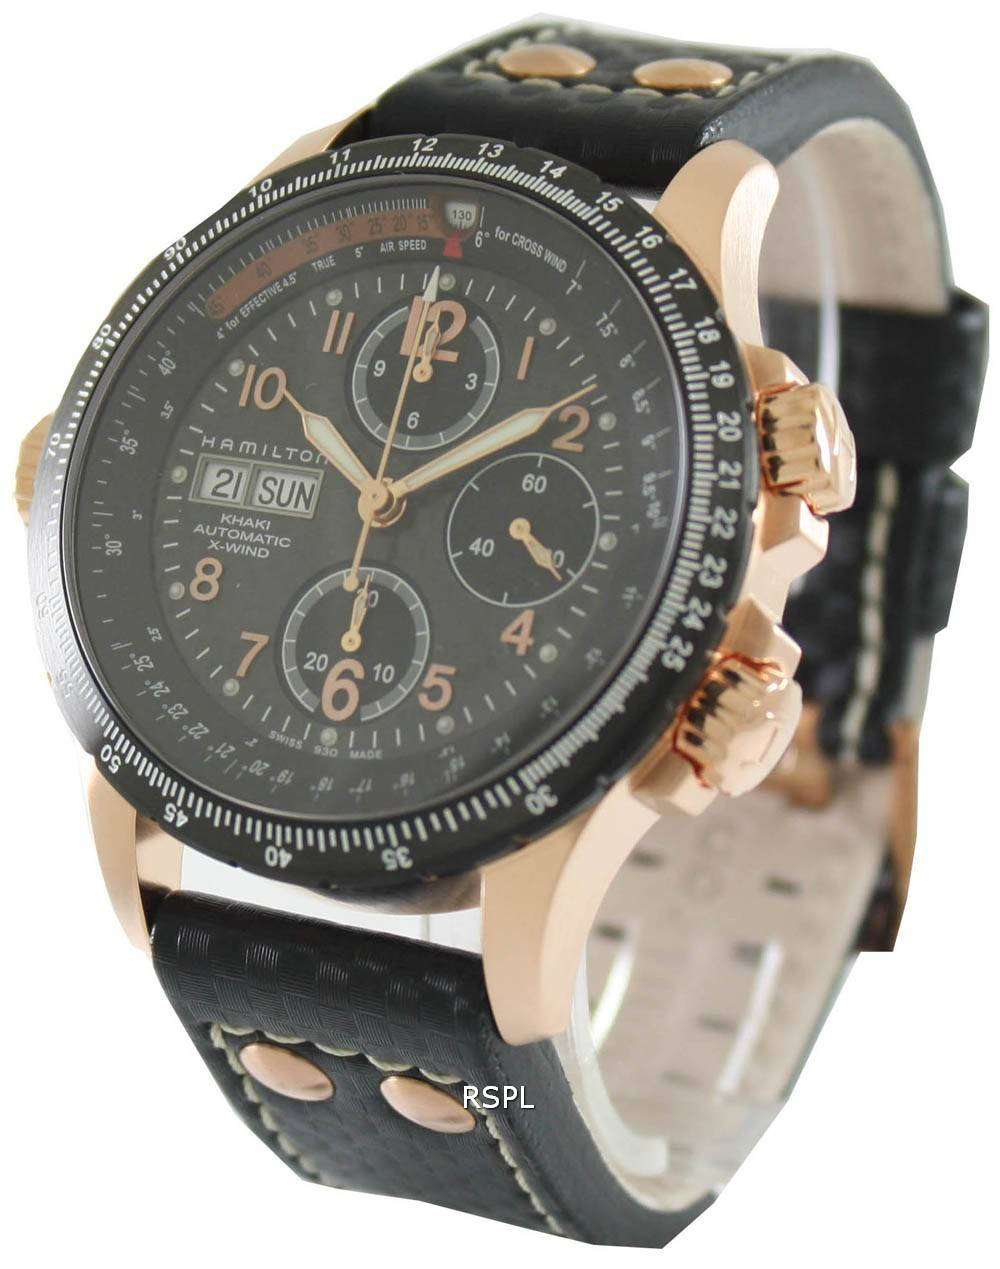 font creation complaints modern seiko grand brand watches men sport watchuseek top code luxury b steel women stainless sinobi fashion watch outerwear creative coupon bunting ibso baby